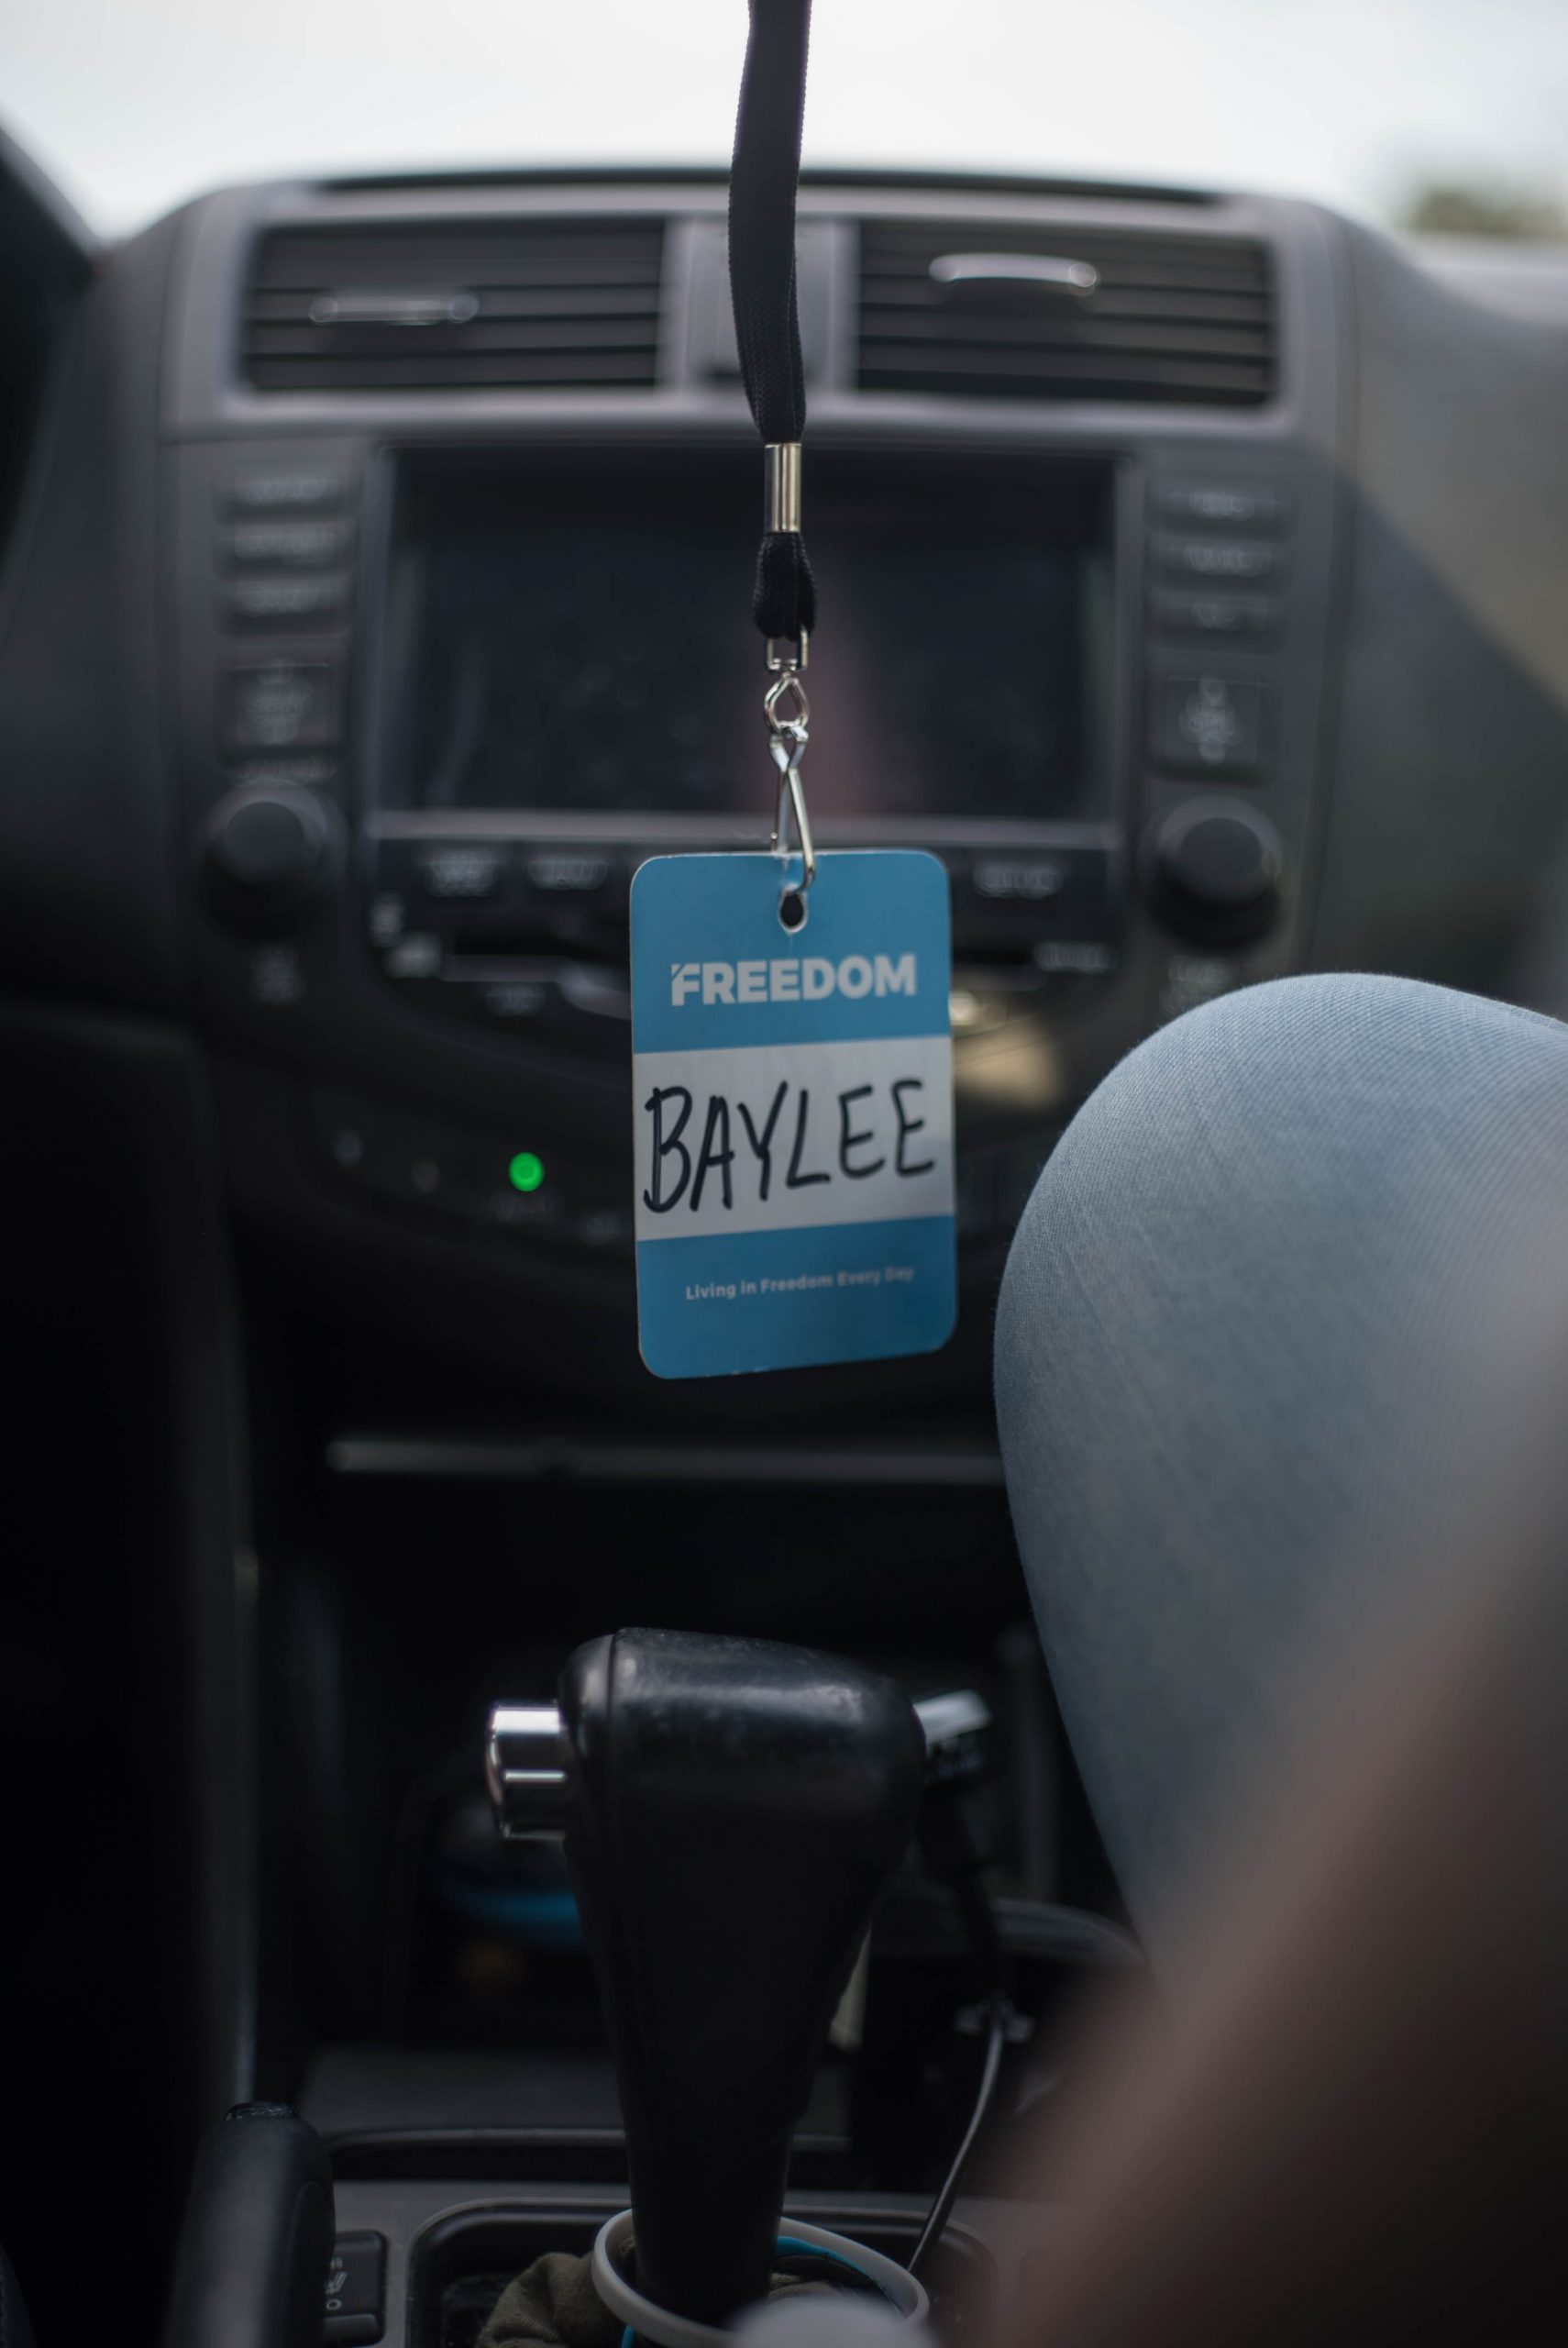 Baylee identification card with blue lanyard